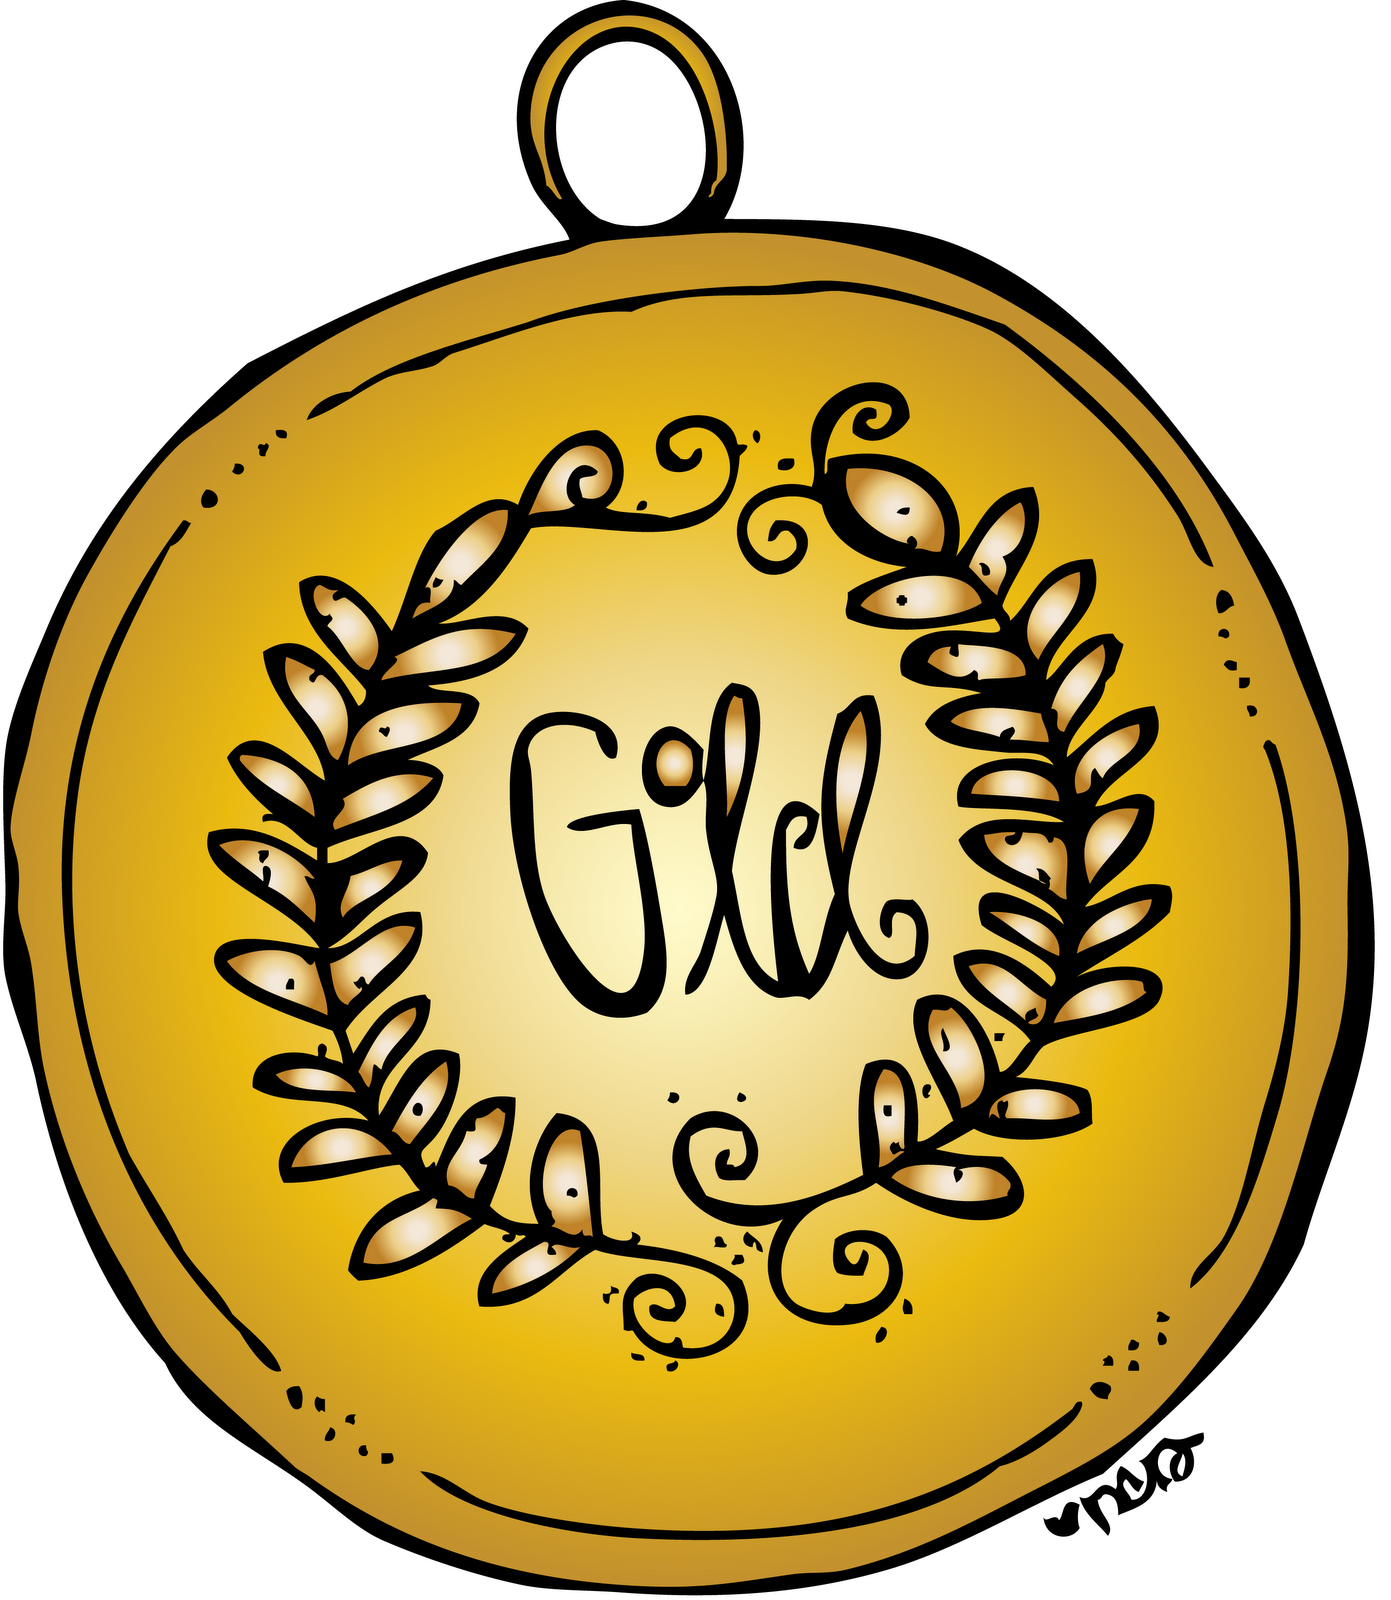 clip art medals free - photo #34